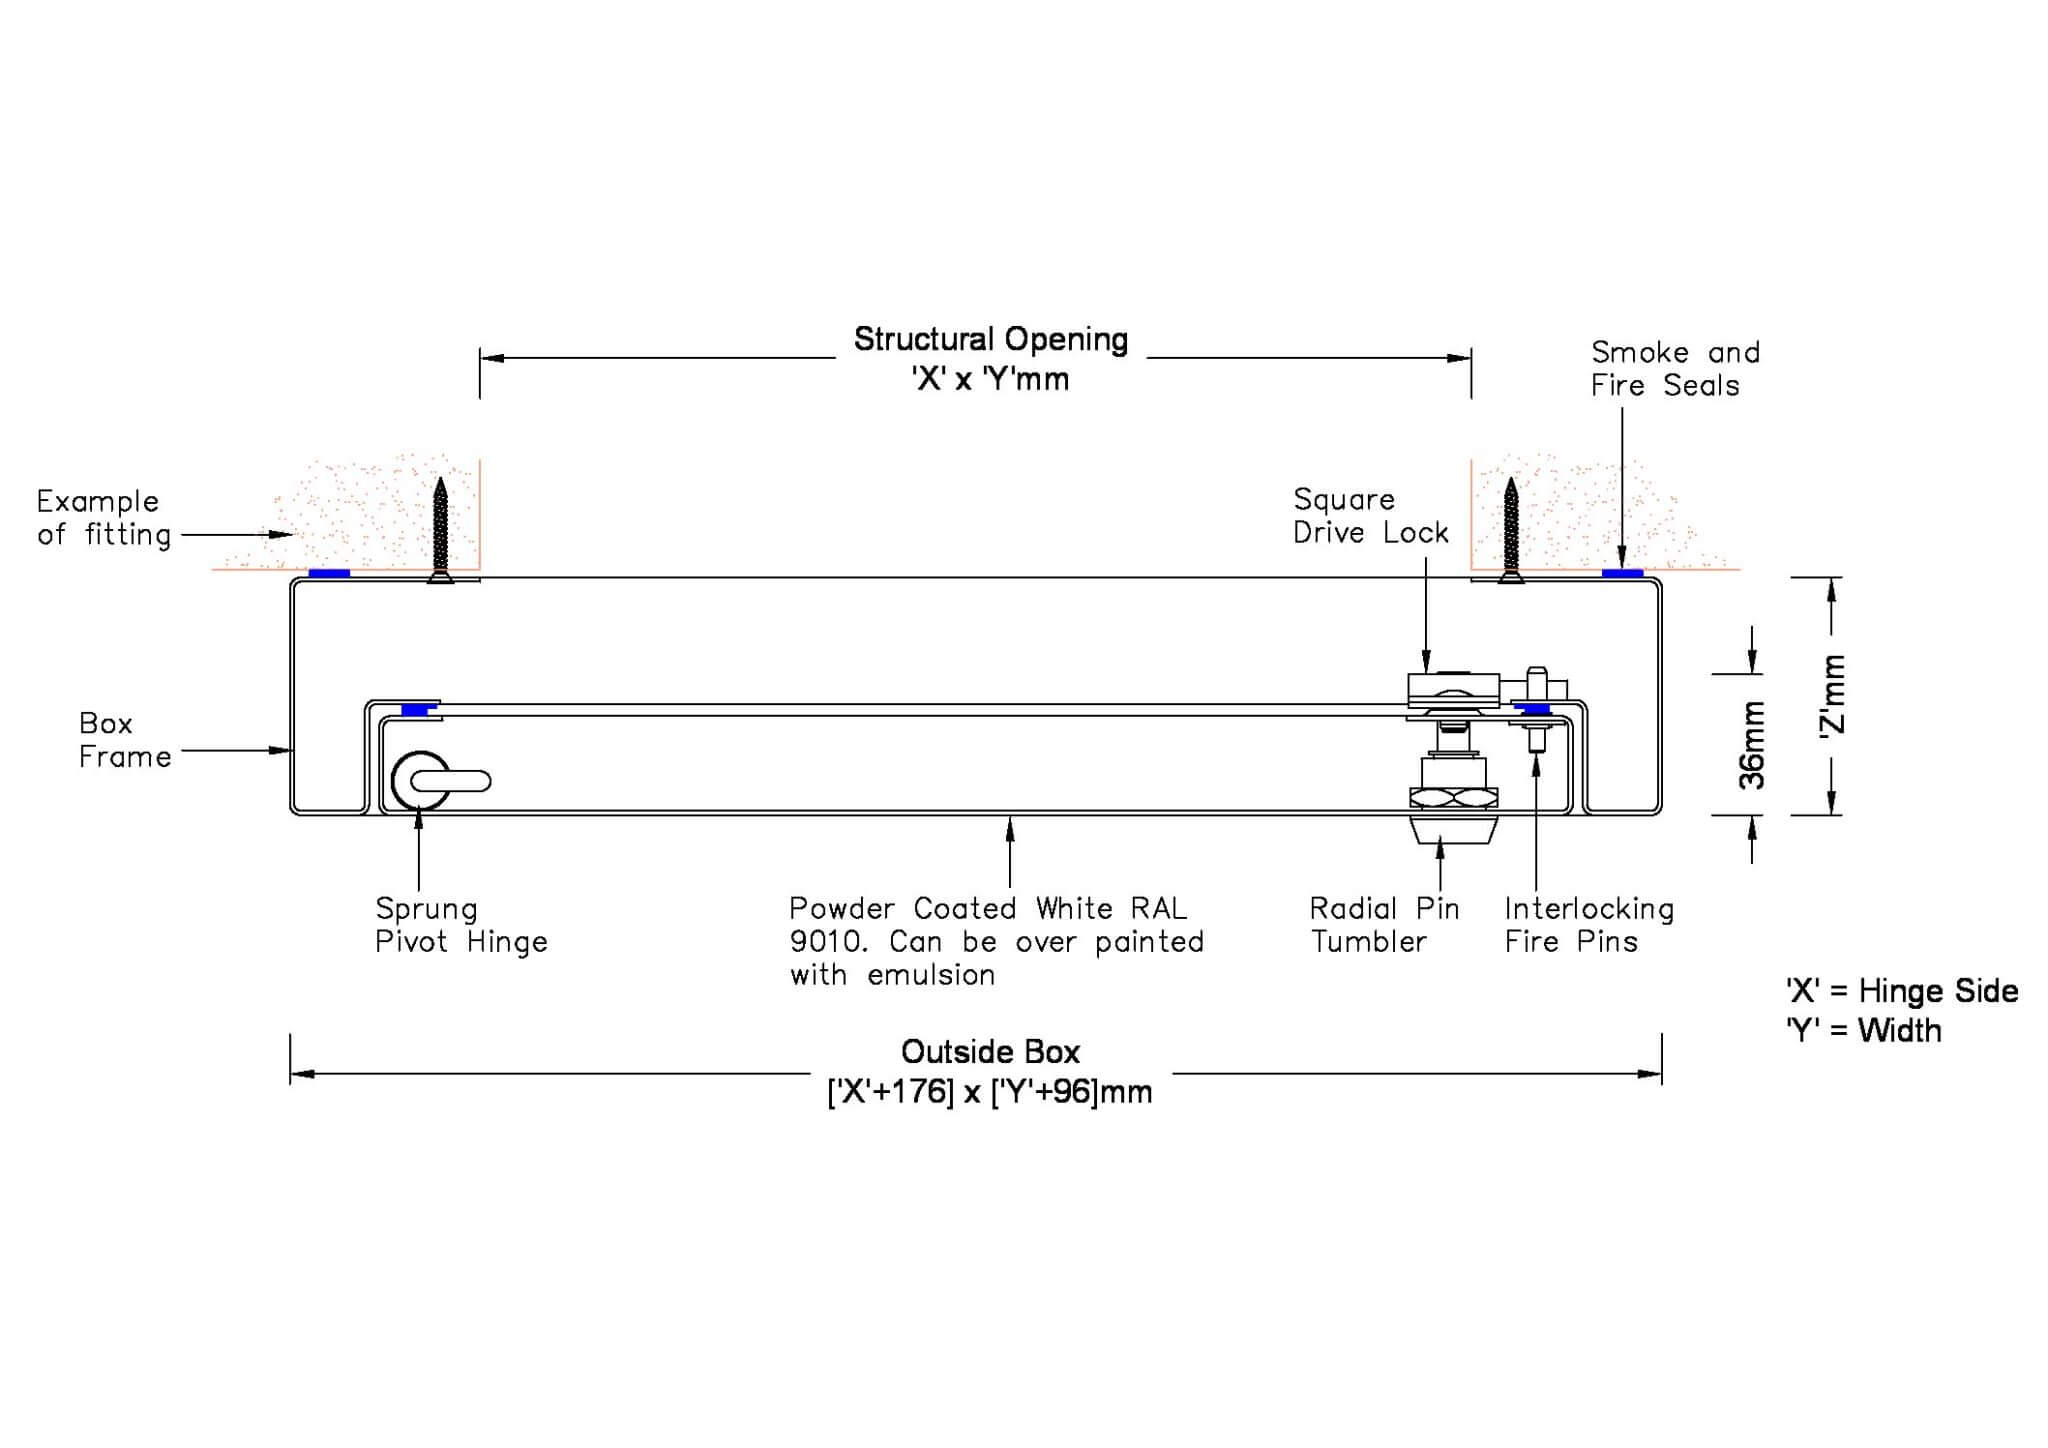 Fire Rated Meter Over Box drawing